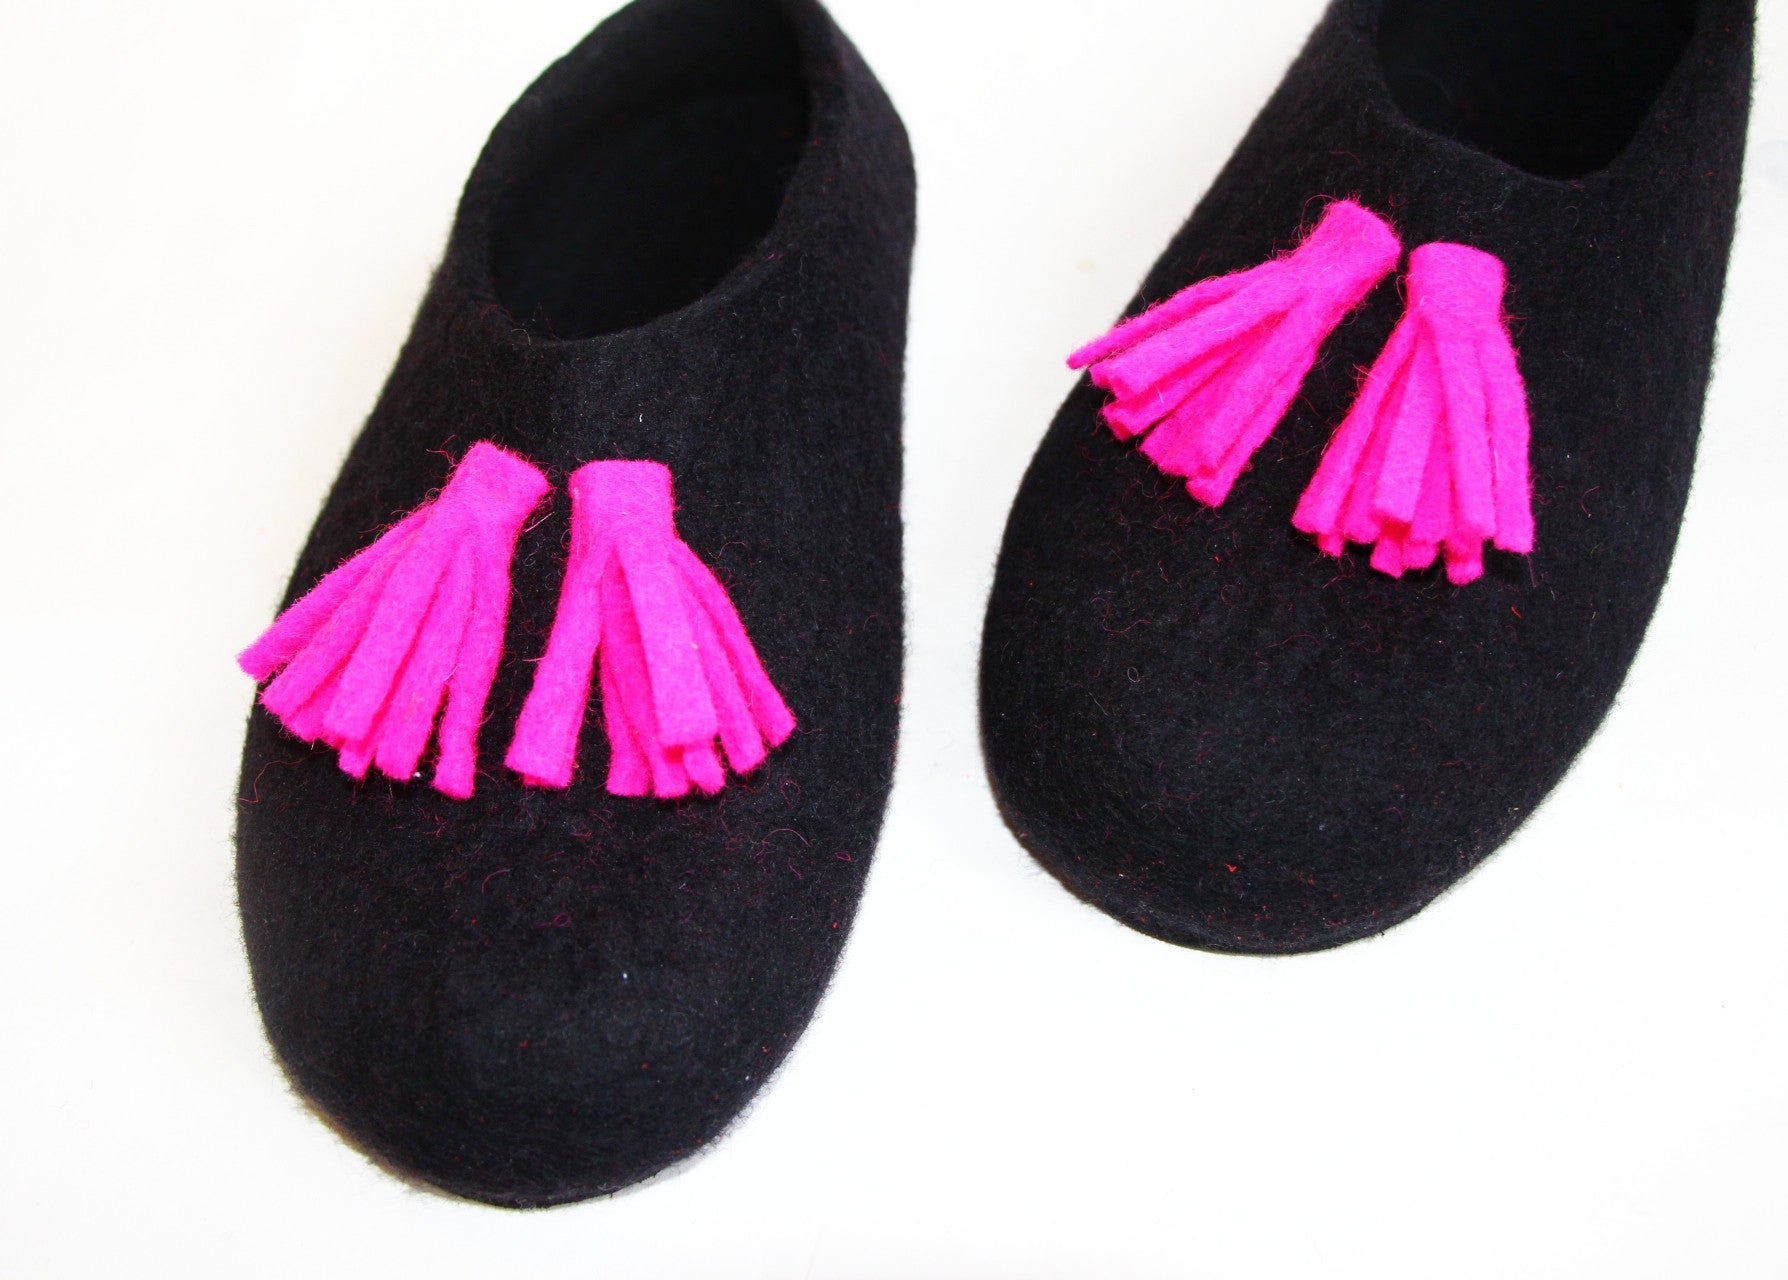 Womens Tassel Slippers Black Fuchsia Contrast Sole - Wool Walker  - 3